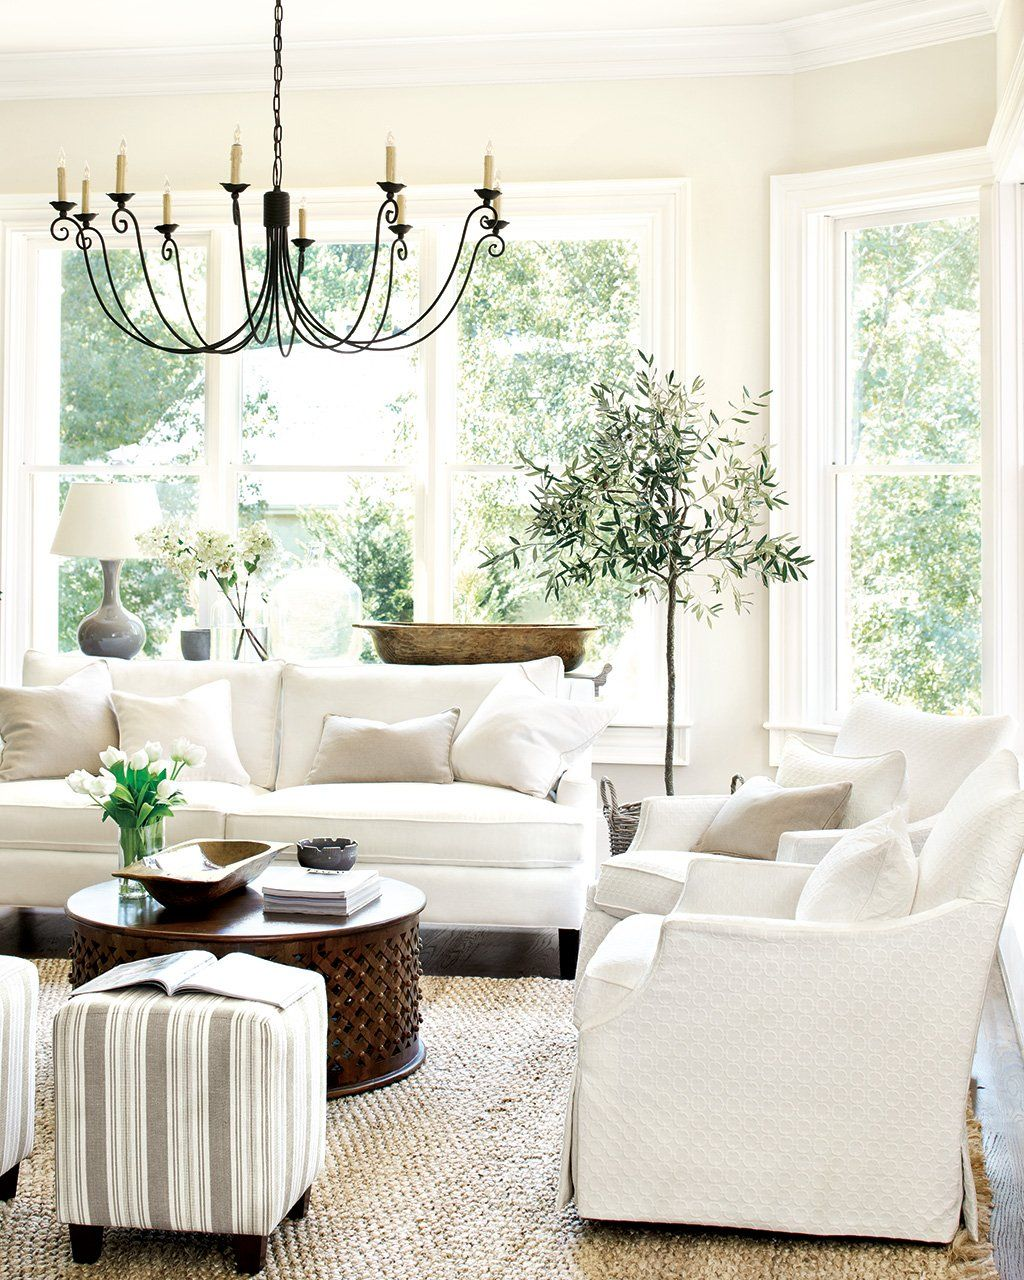 15 Ways to Layout Your Living Room | Gourd lamp, Gliders and Jute